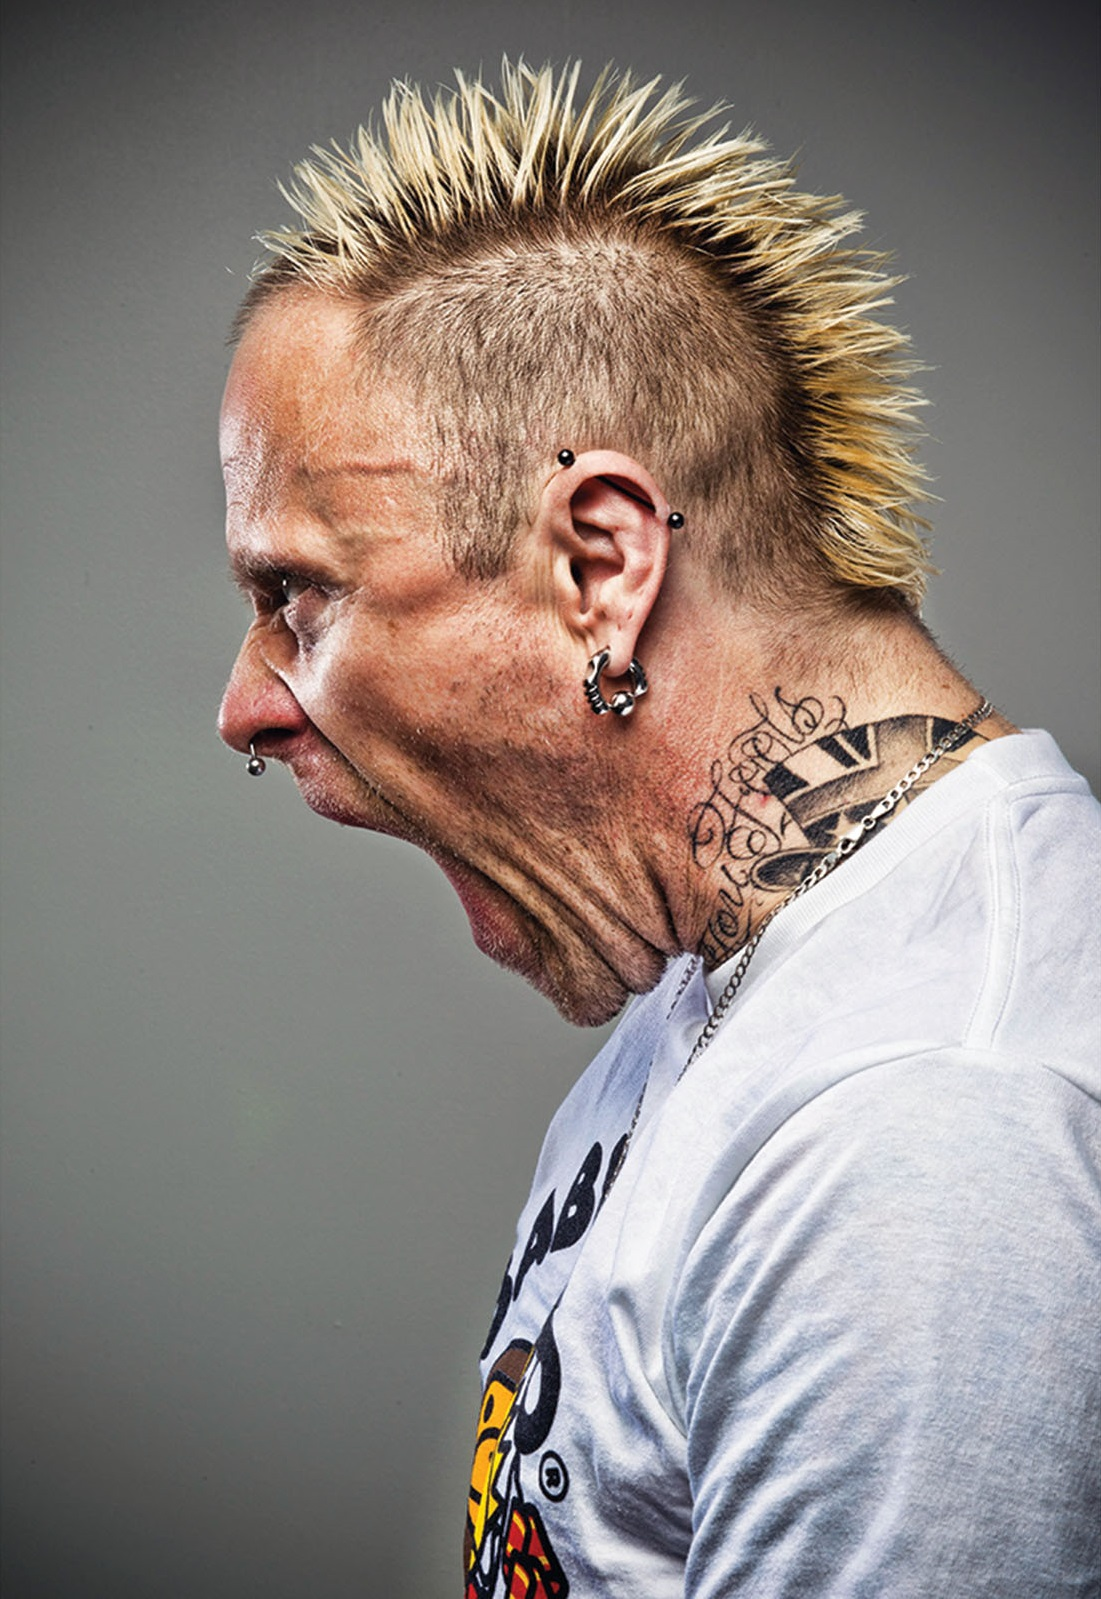 Hd Wallpapers For Pc 1080p Free Download Pack Keith Charles Flint Wallpapers High Quality Download Free